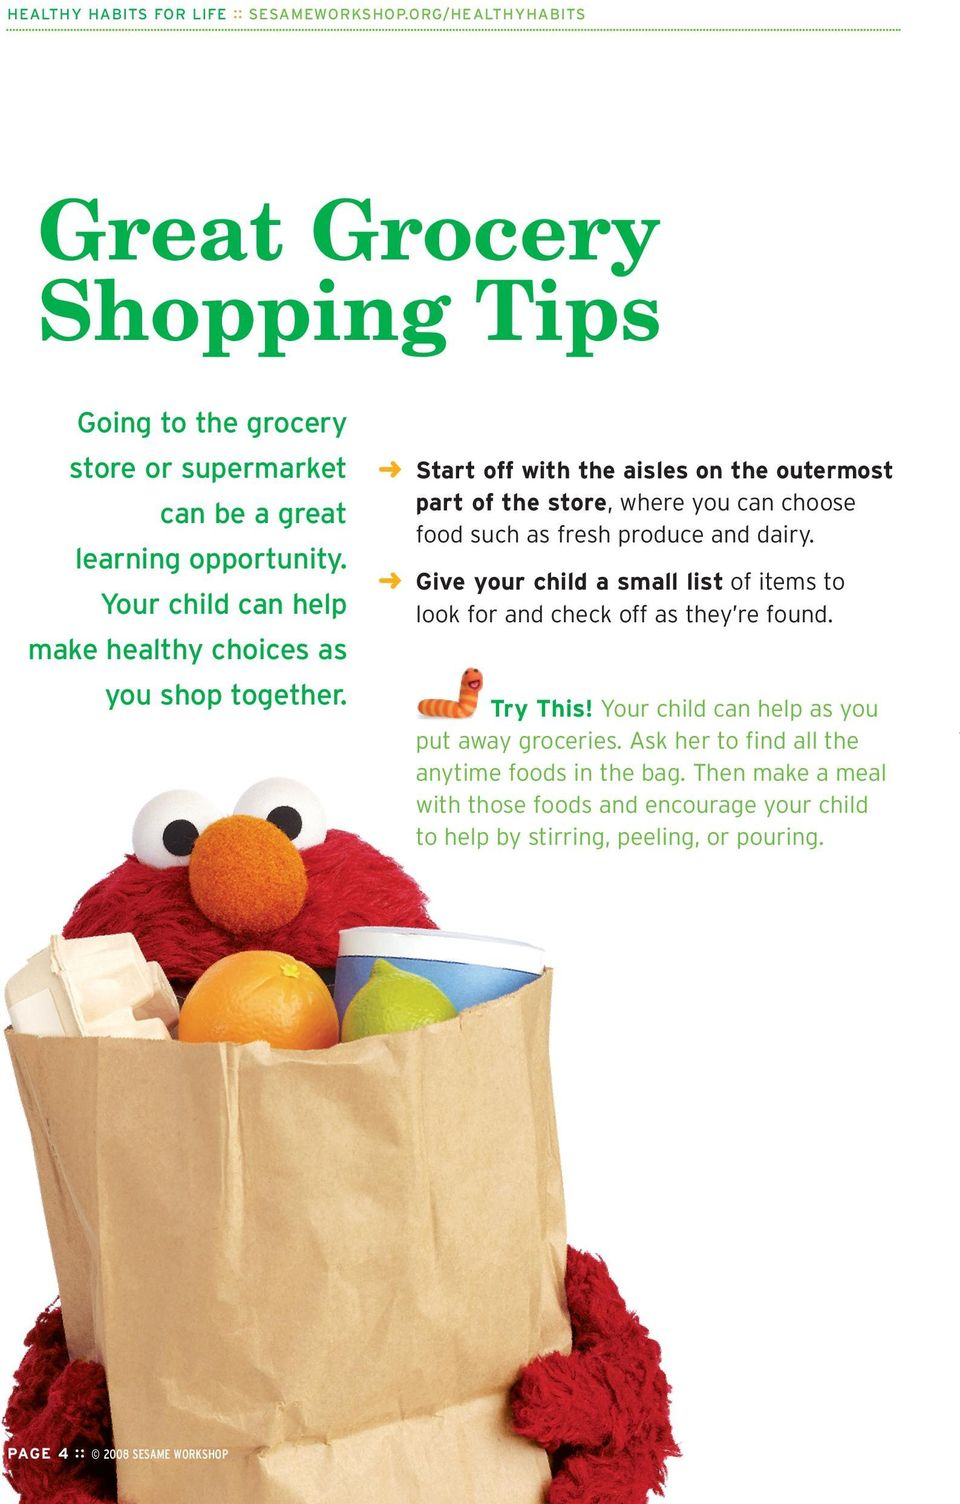 Give your child a small list of items to look for and check off as they re found. make healthy choices as you shop together. PAGE 4 :: 2008 SESAME WORKSHOP Try This!